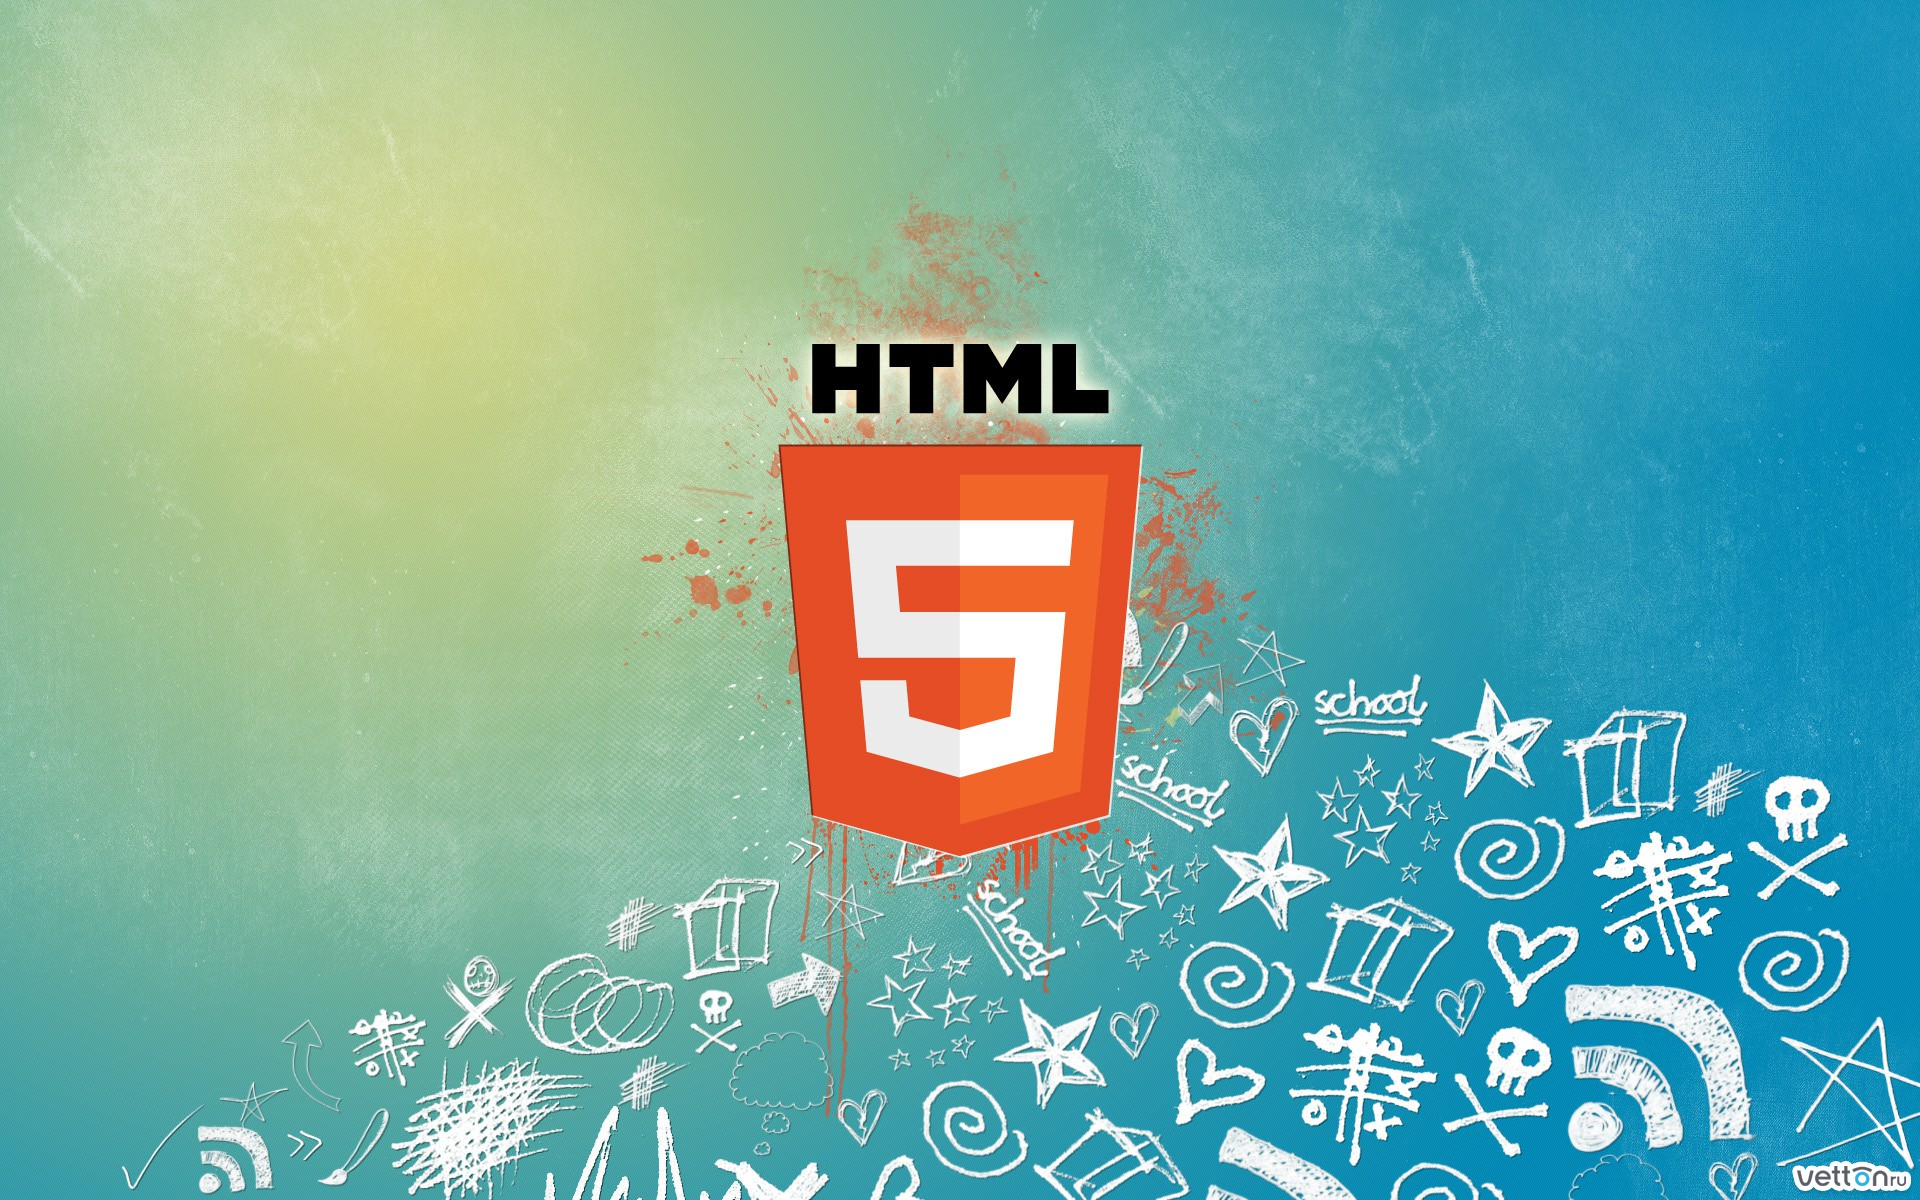 html5, html, hyper text markup language, web